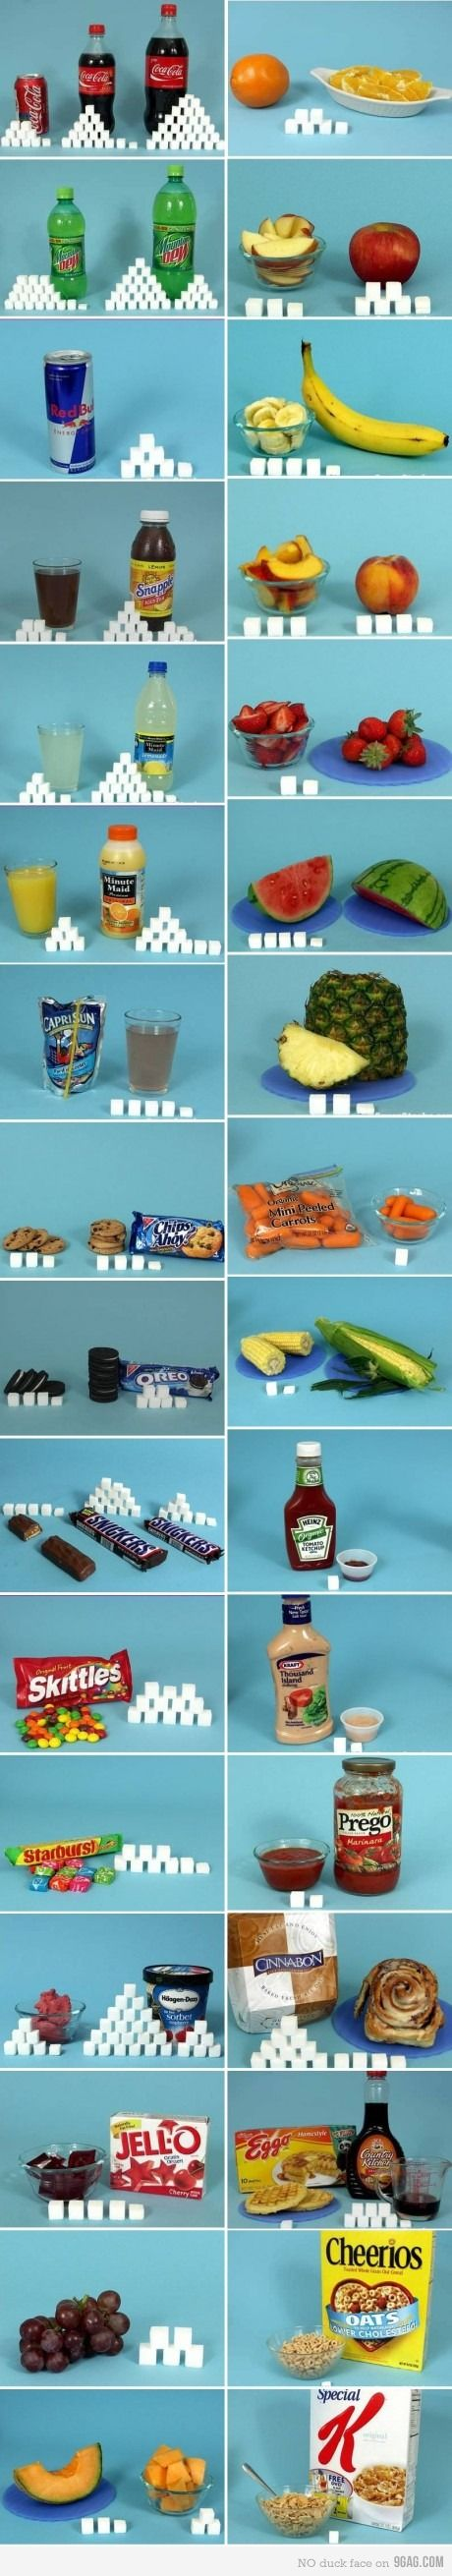 Just the amount of sugar in stuff we like...